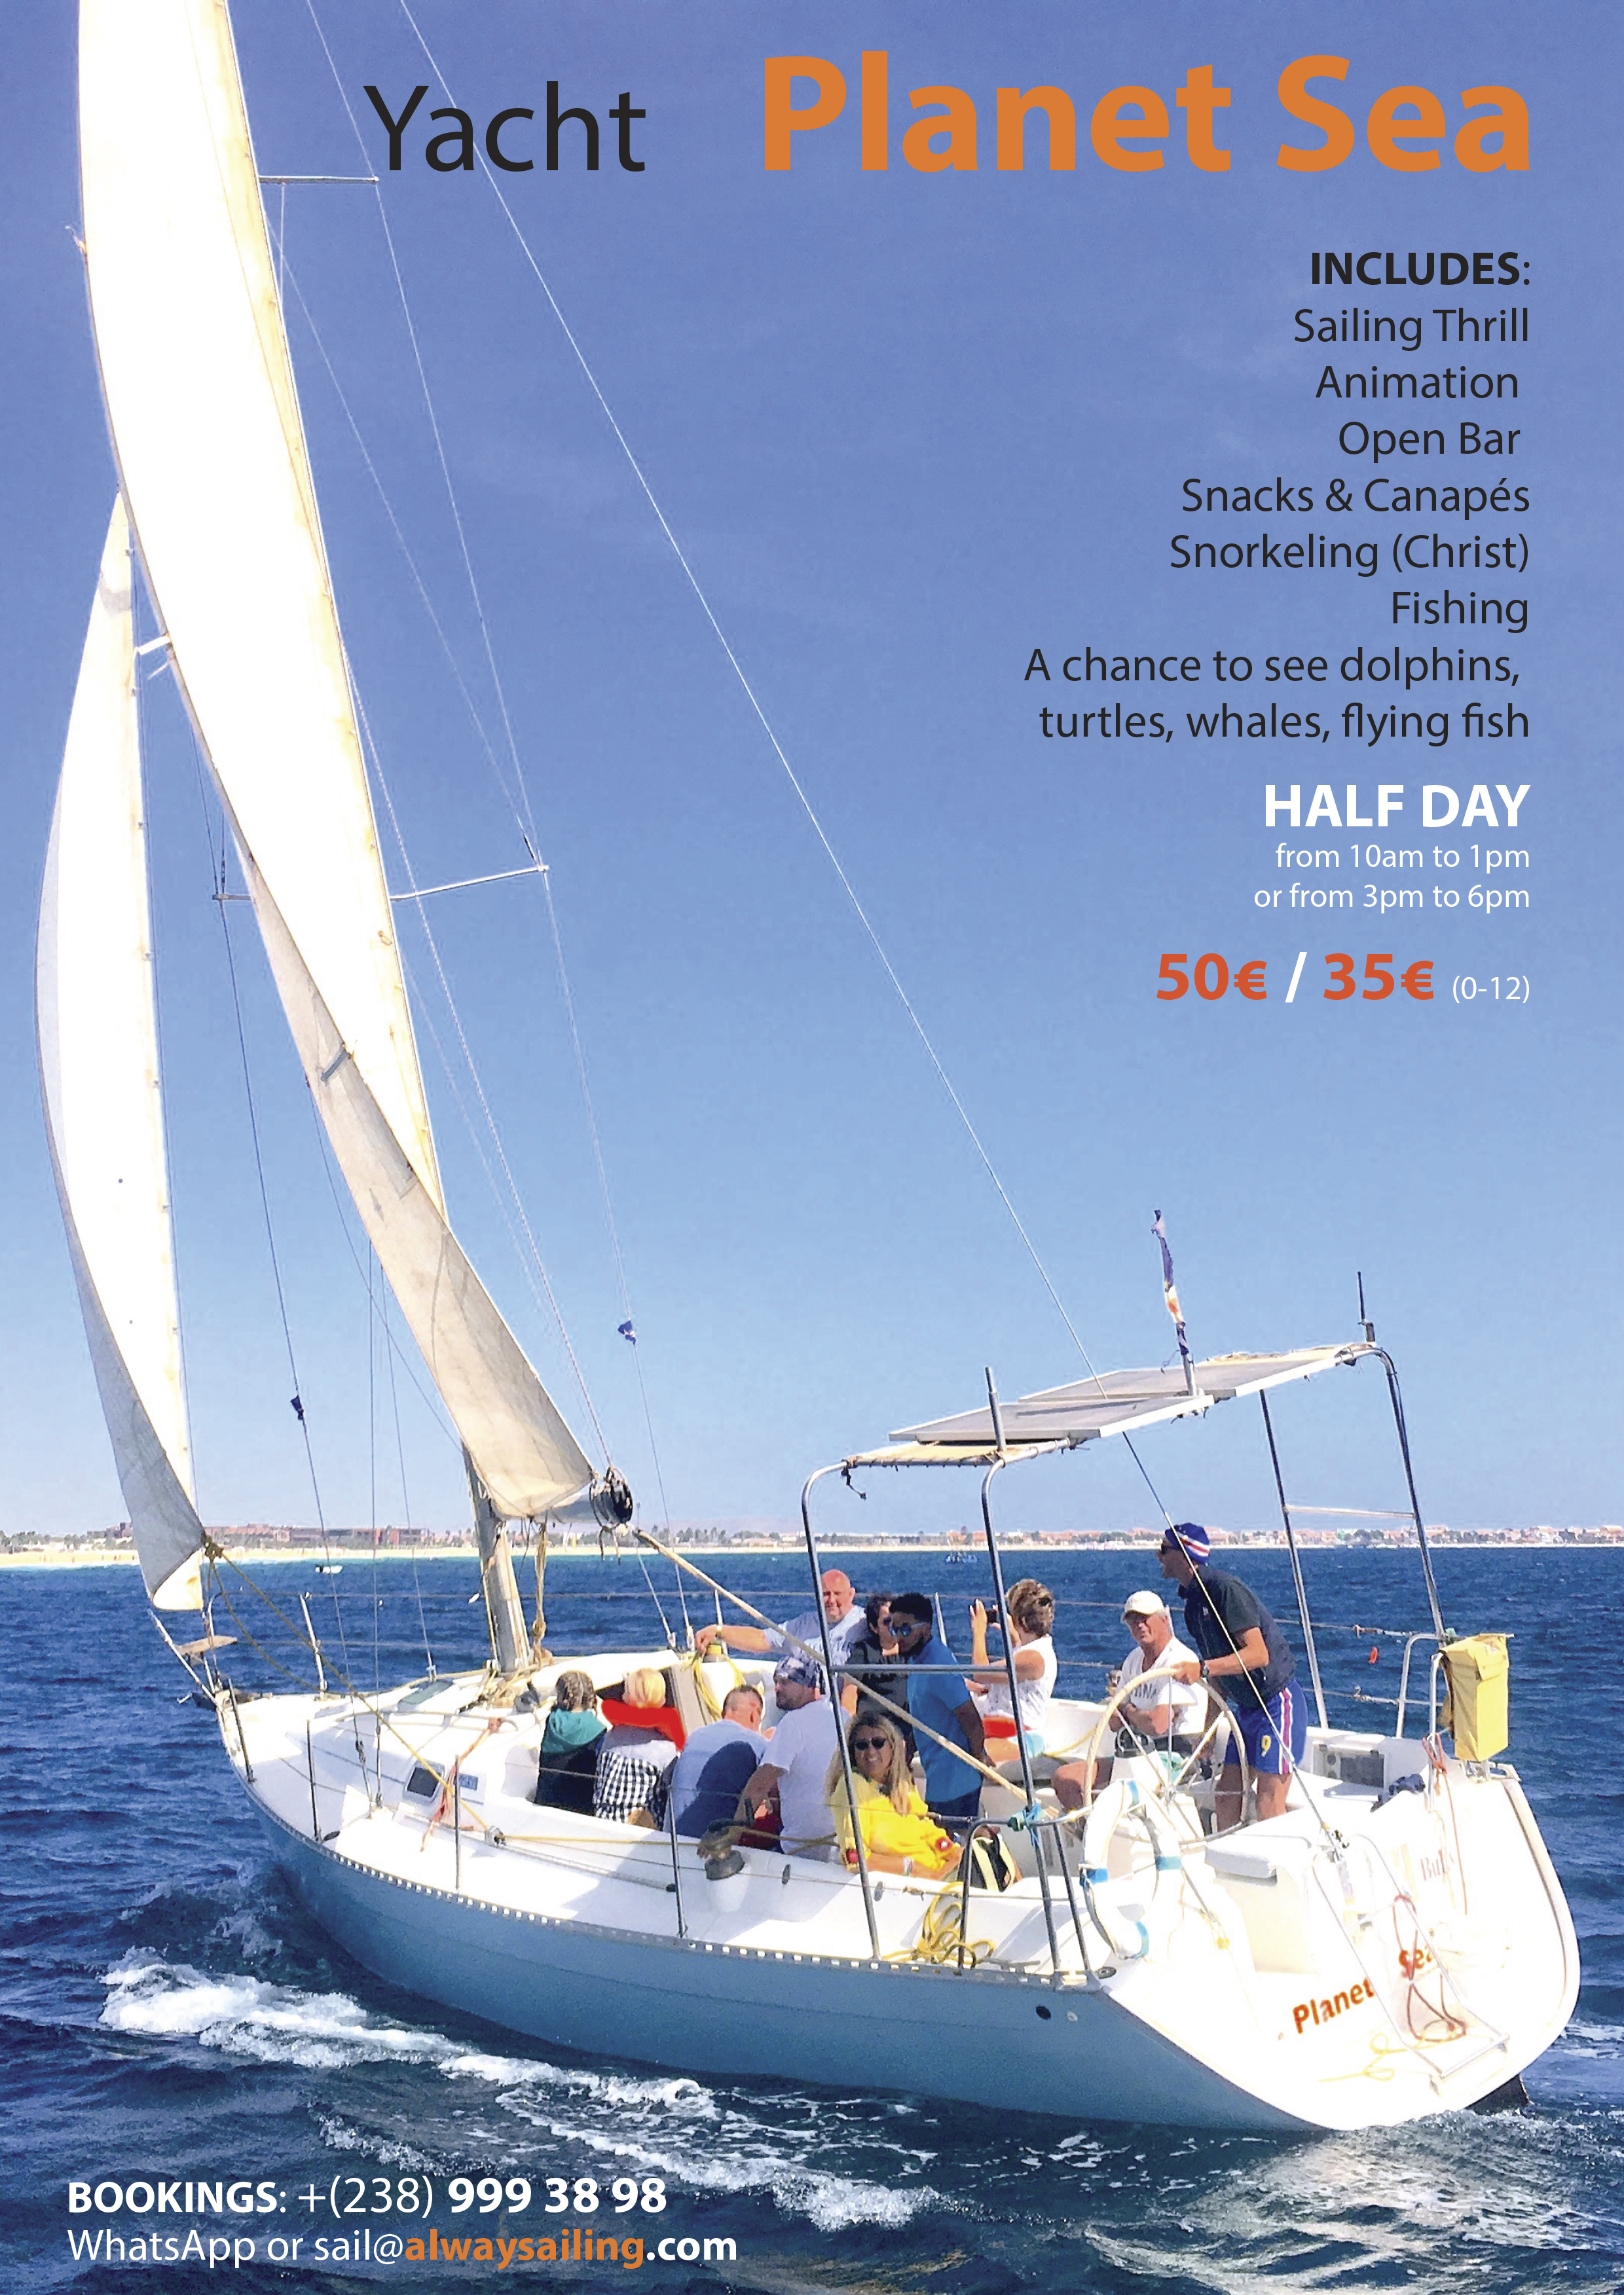 Planet Sea - This is our affordable half day trip of sailing, snorkelling, fishing, snacks, canapés, open bar, etcJoin us on Wednesdays and FridaysMornings: from 10am to 1pmAfternoons: from 3pm to 6pmAdults 50€ Children 35€ (0 - 16)